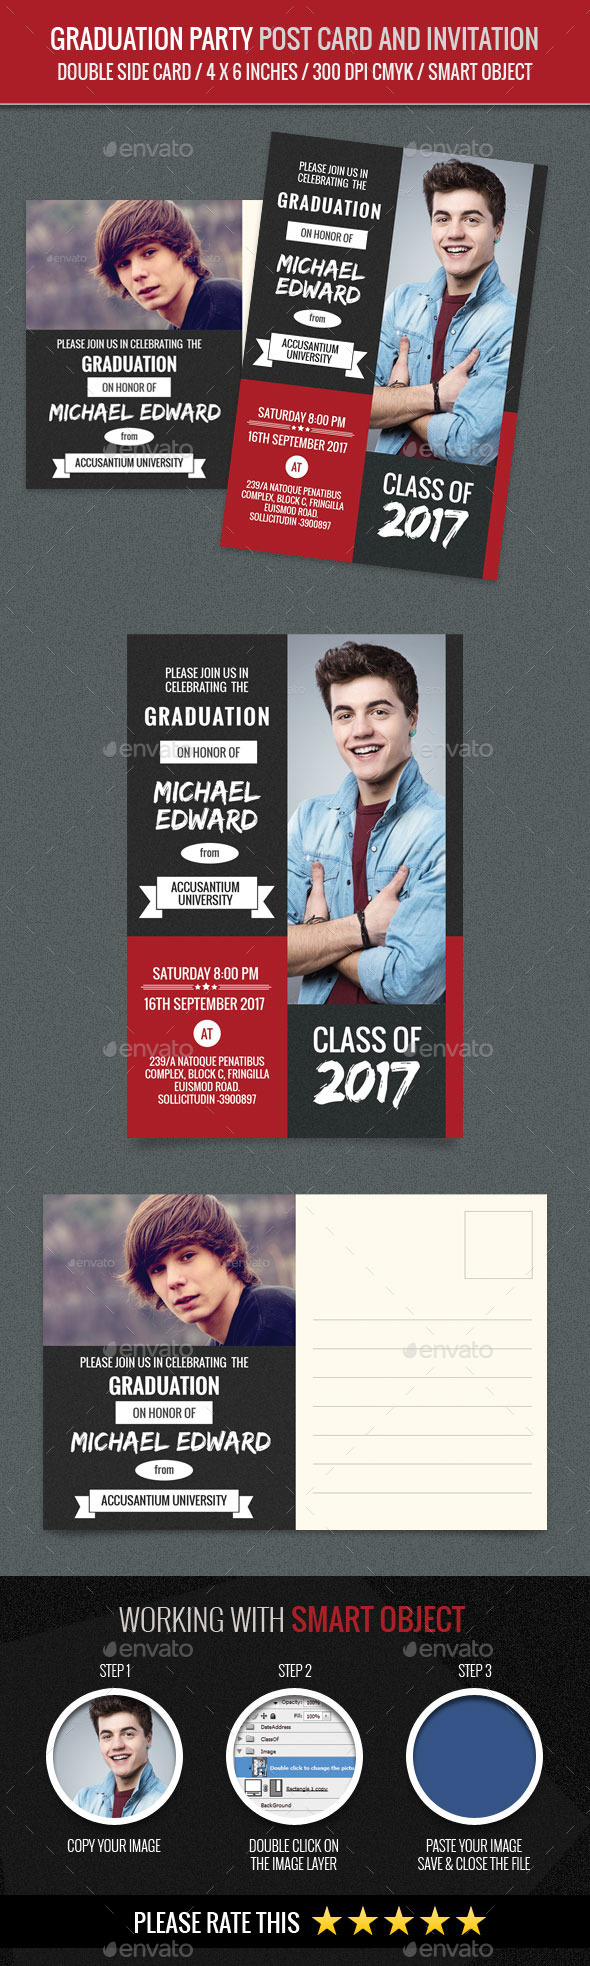 Graduation Party Post Card and Invitation Card Tem by abira ...